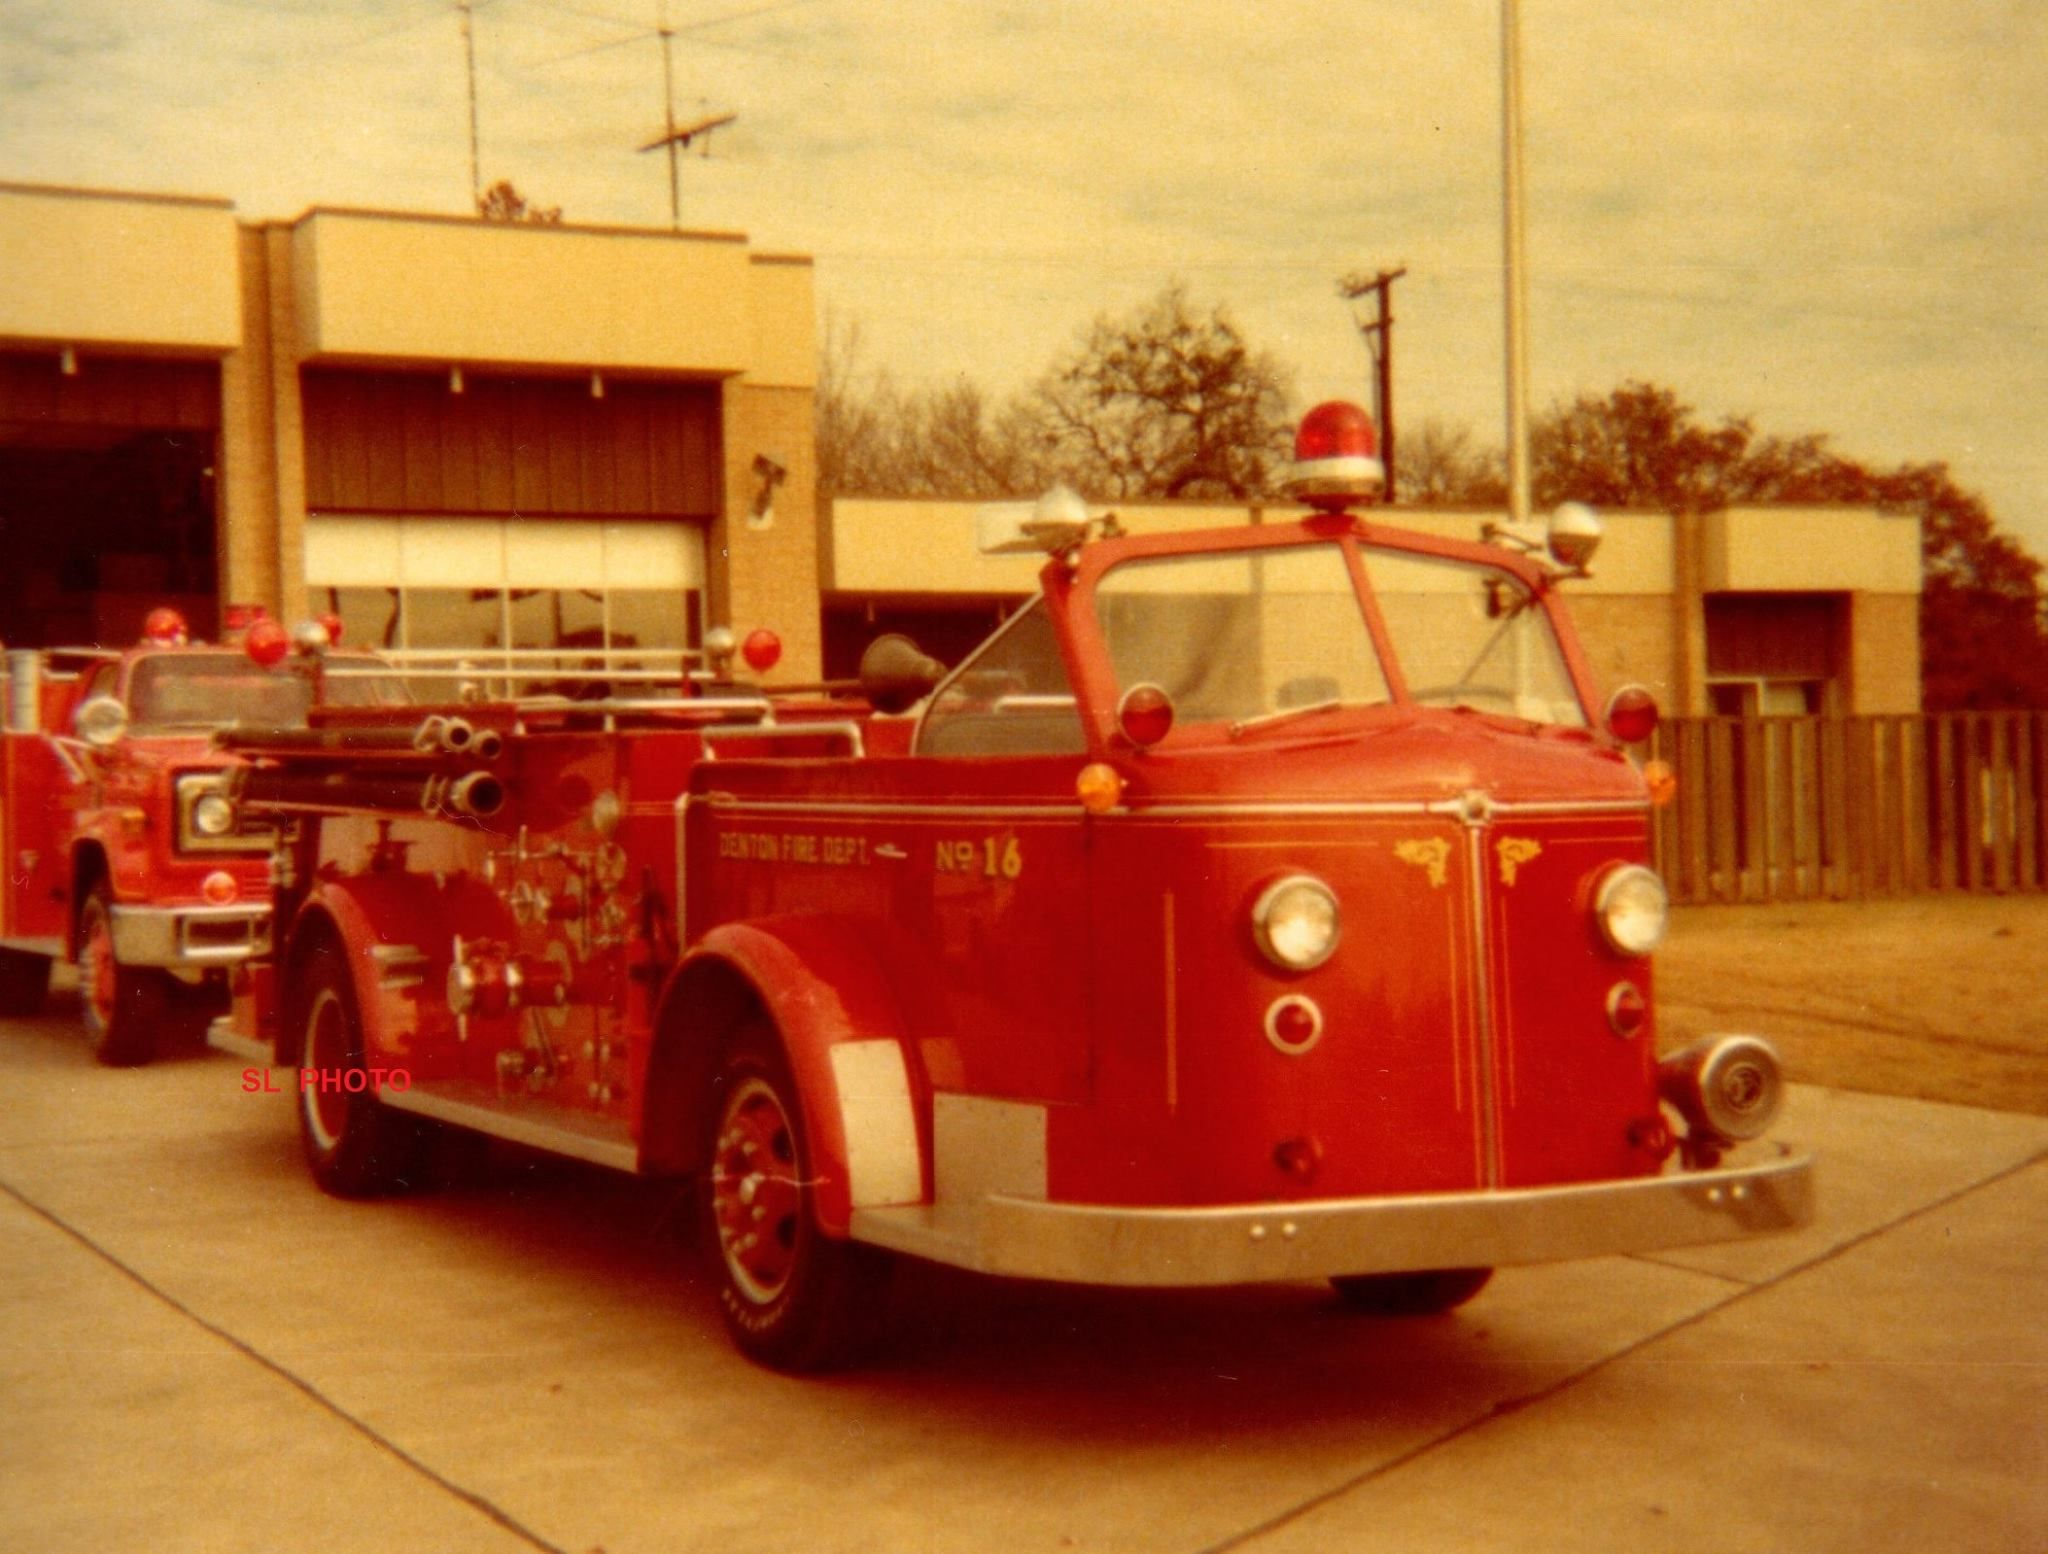 Former Pumper 16 (1953 American LaFrance) with a 750GPM pump and a